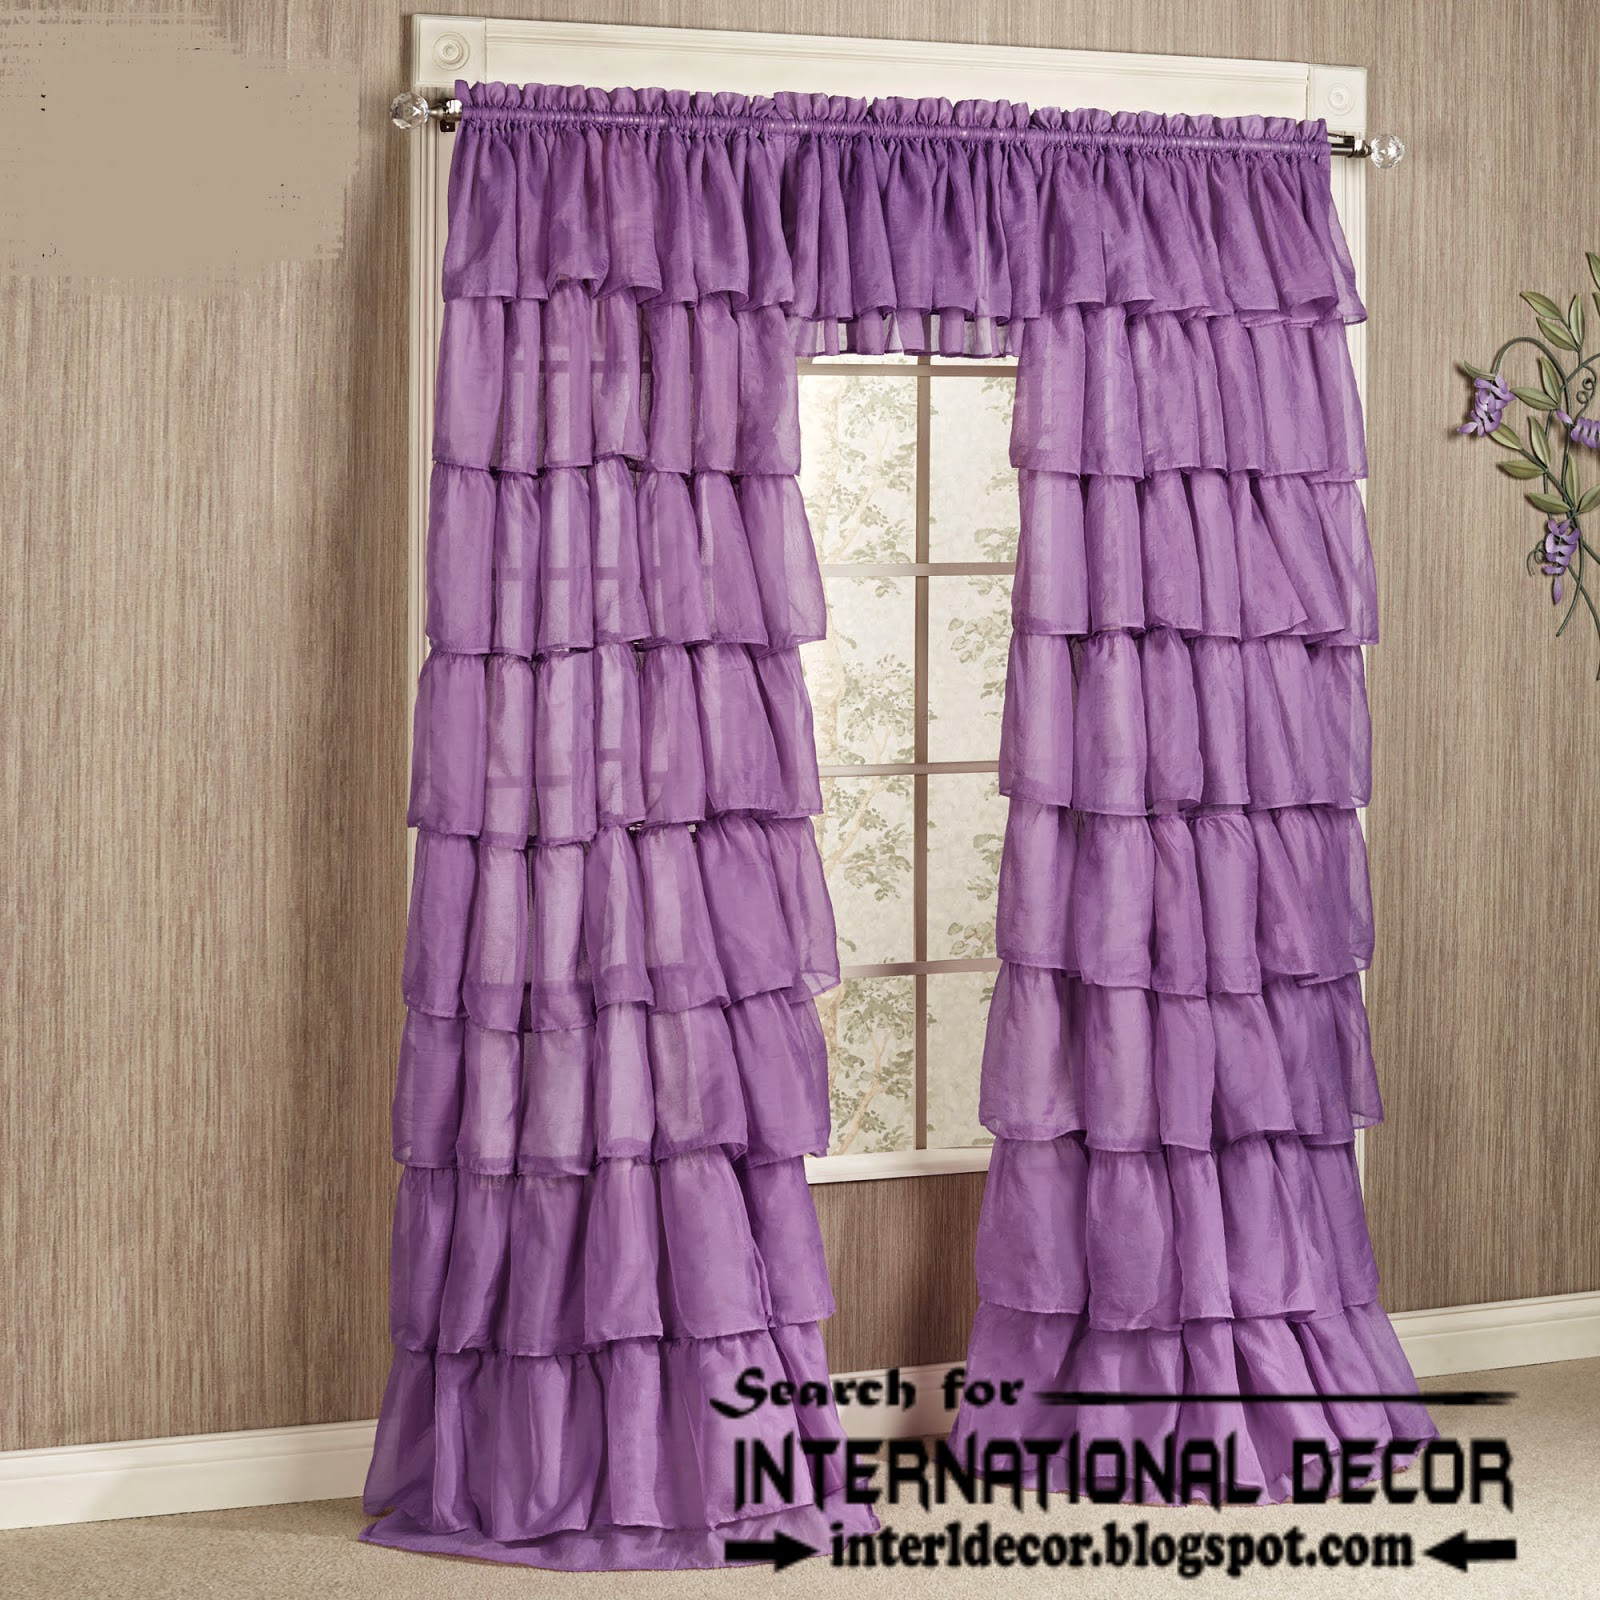 largest catalog of purple curtains and drapes, lilac curtains, ruffle purple curtains